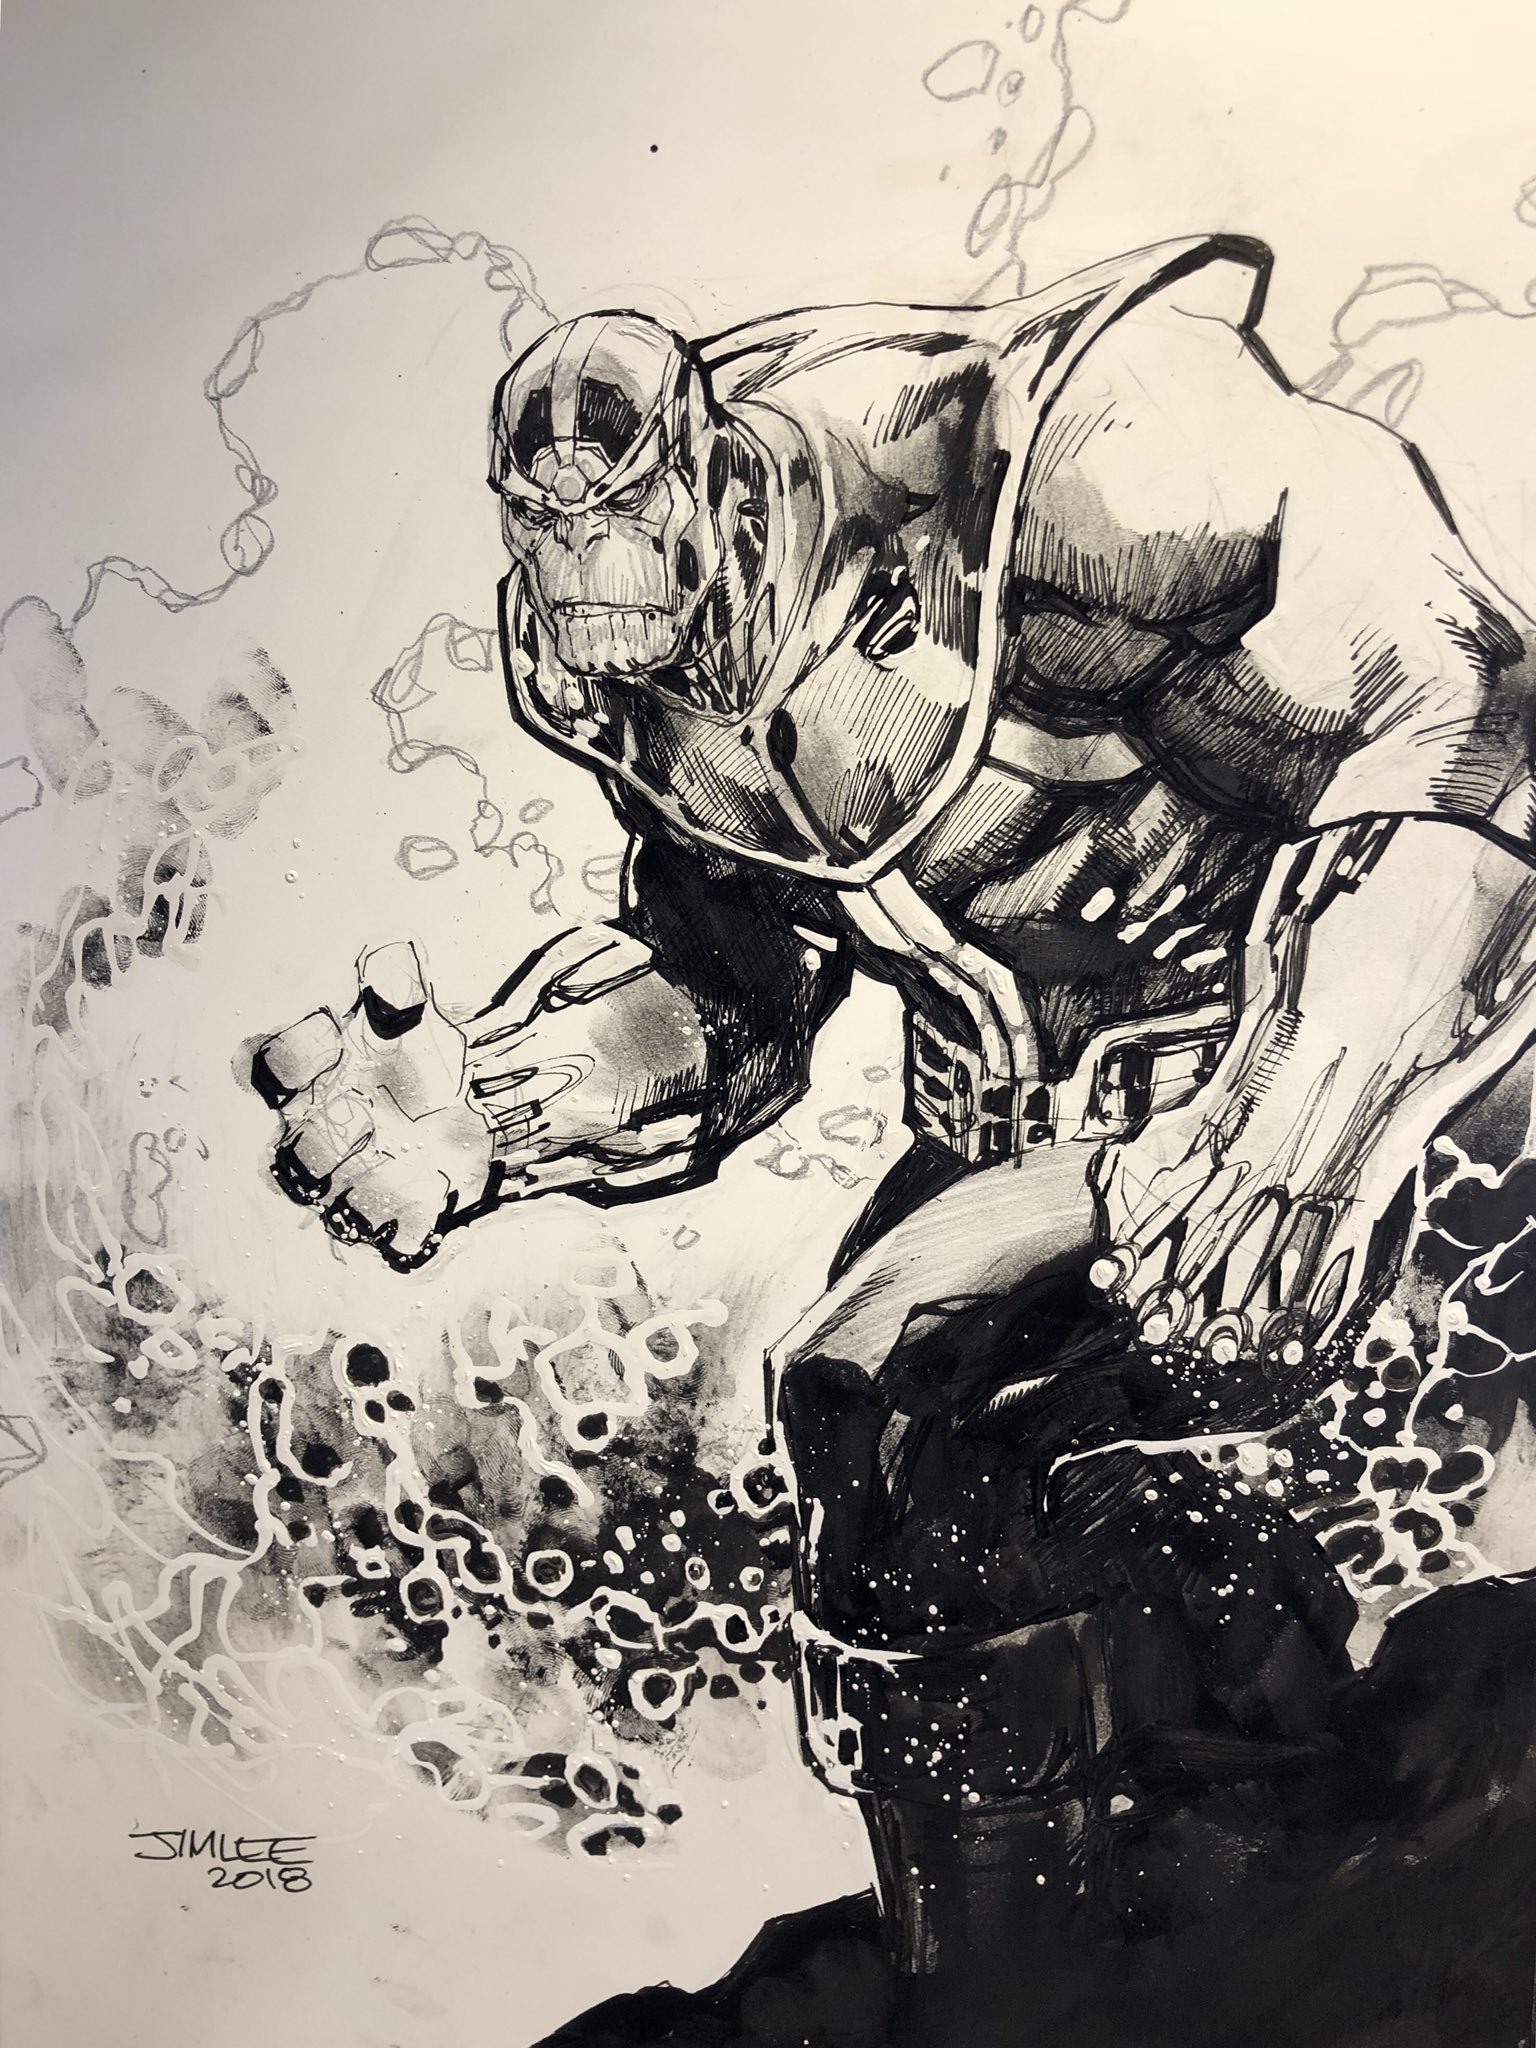 "Jim Lee on Twitter: ""Come draw-a-long with Thanos and me ..."